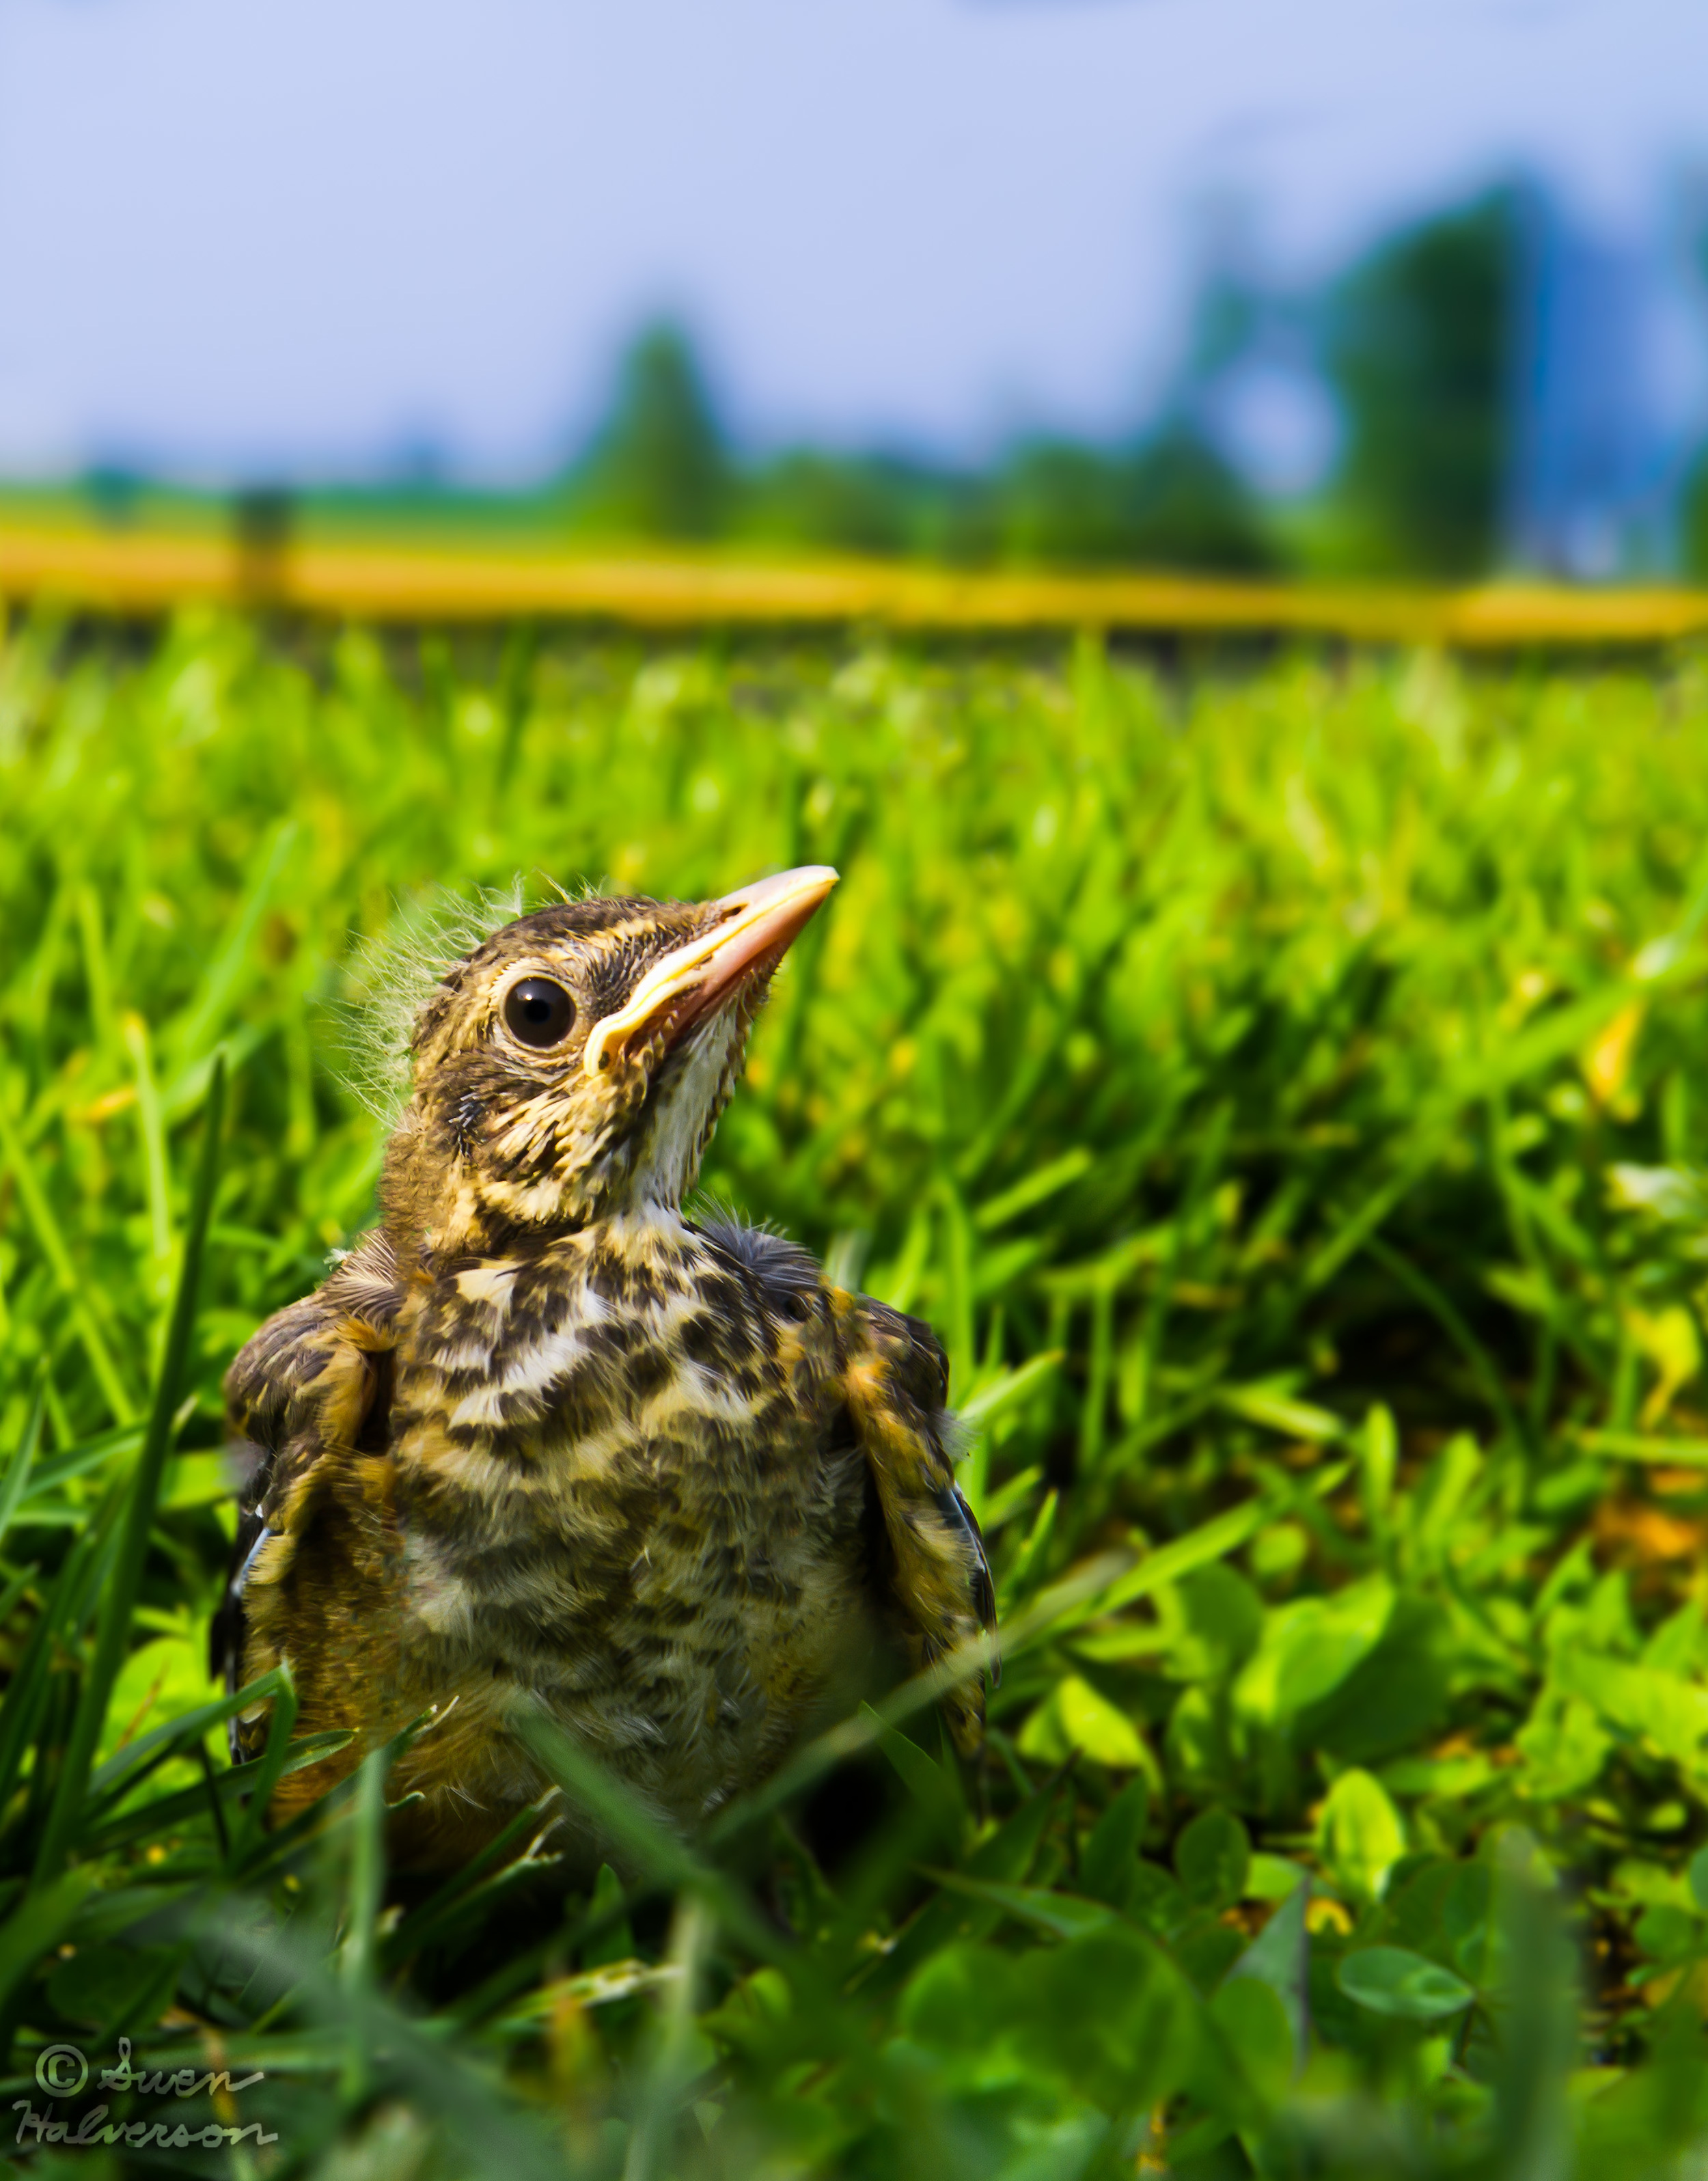 Theme: Small <br>Title: The Meadow Lark